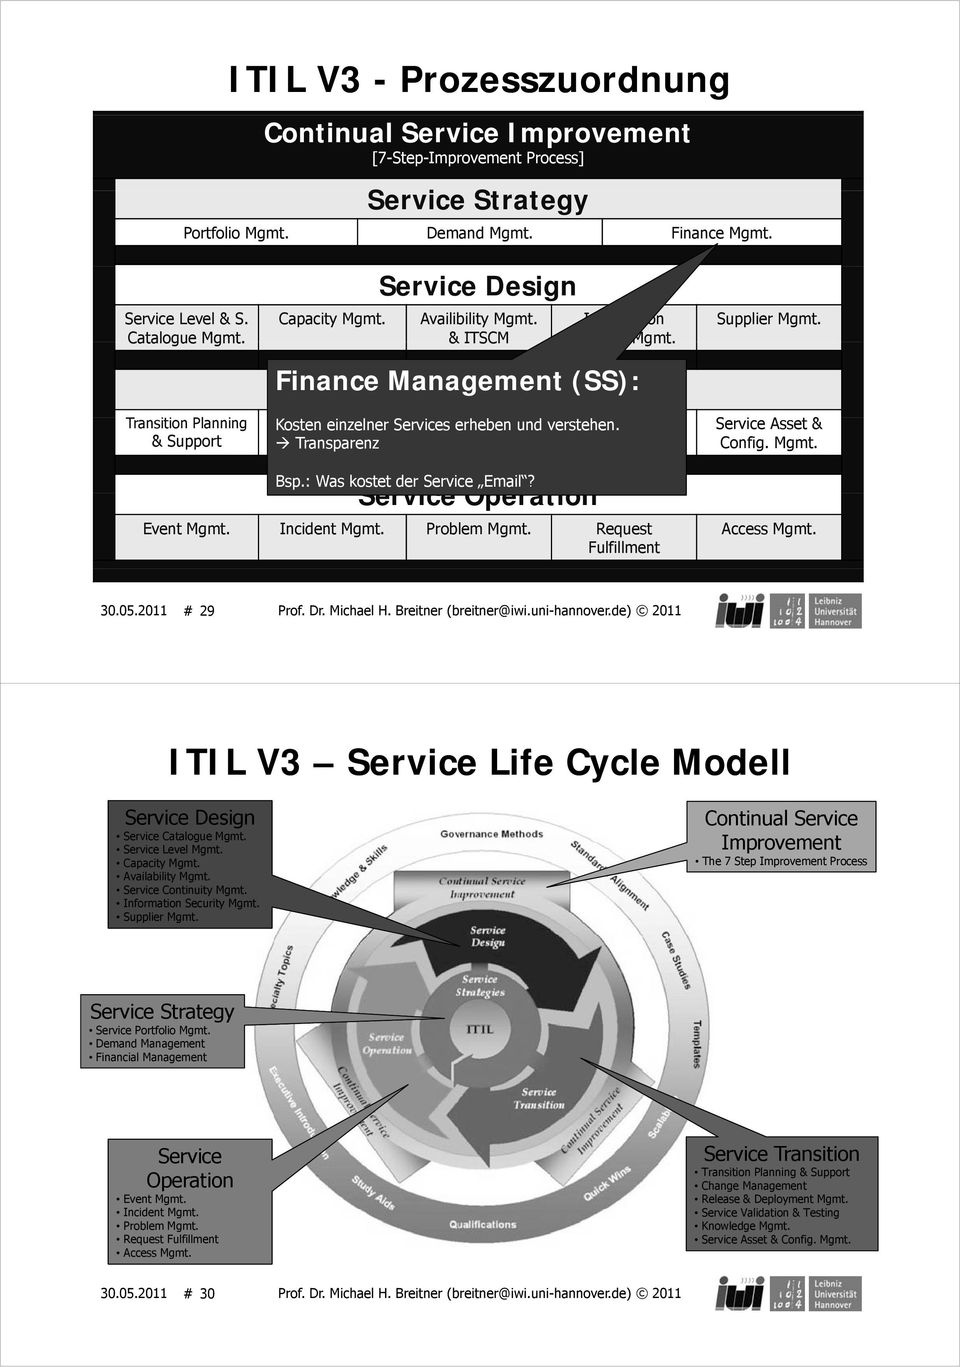 de) 2011 ITIL V3 Service Life Cycle Modell Service Catalogue Mgmt. Service Level Mgmt. Capacity Mgmt. Availability Mgmt. Service Continuity Mgmt.